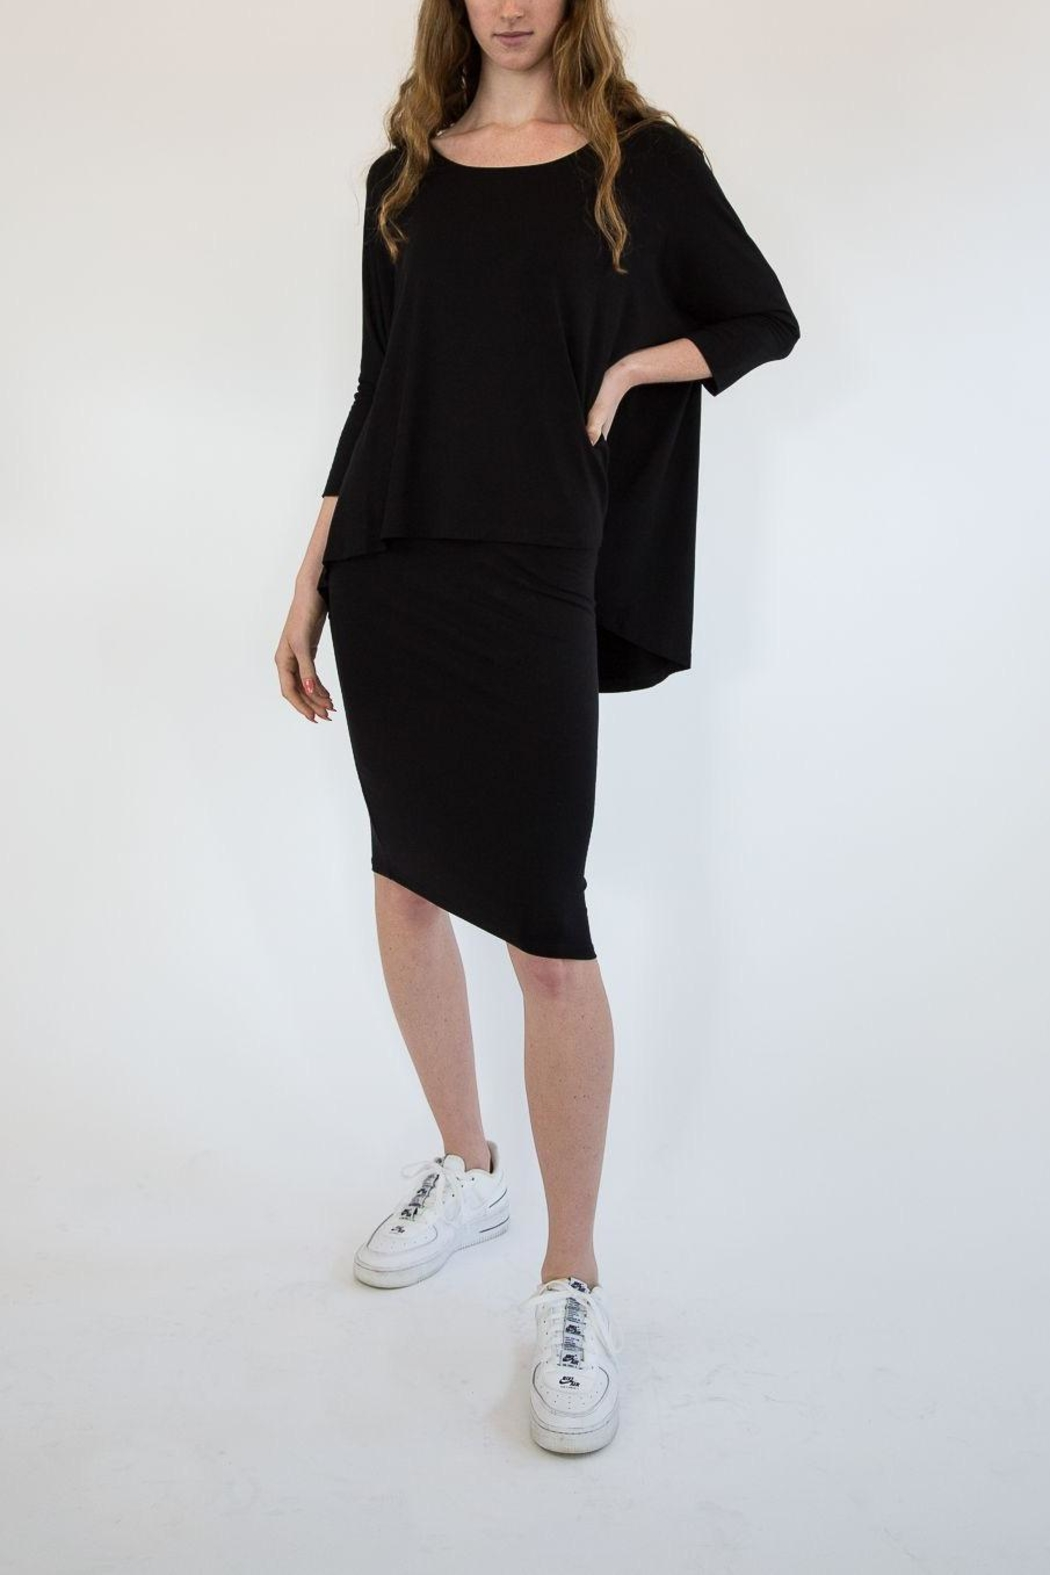 Isle Apparel One Piece Knit Dress With Fitted Skirt With a Loose Overlay Top - Main Image